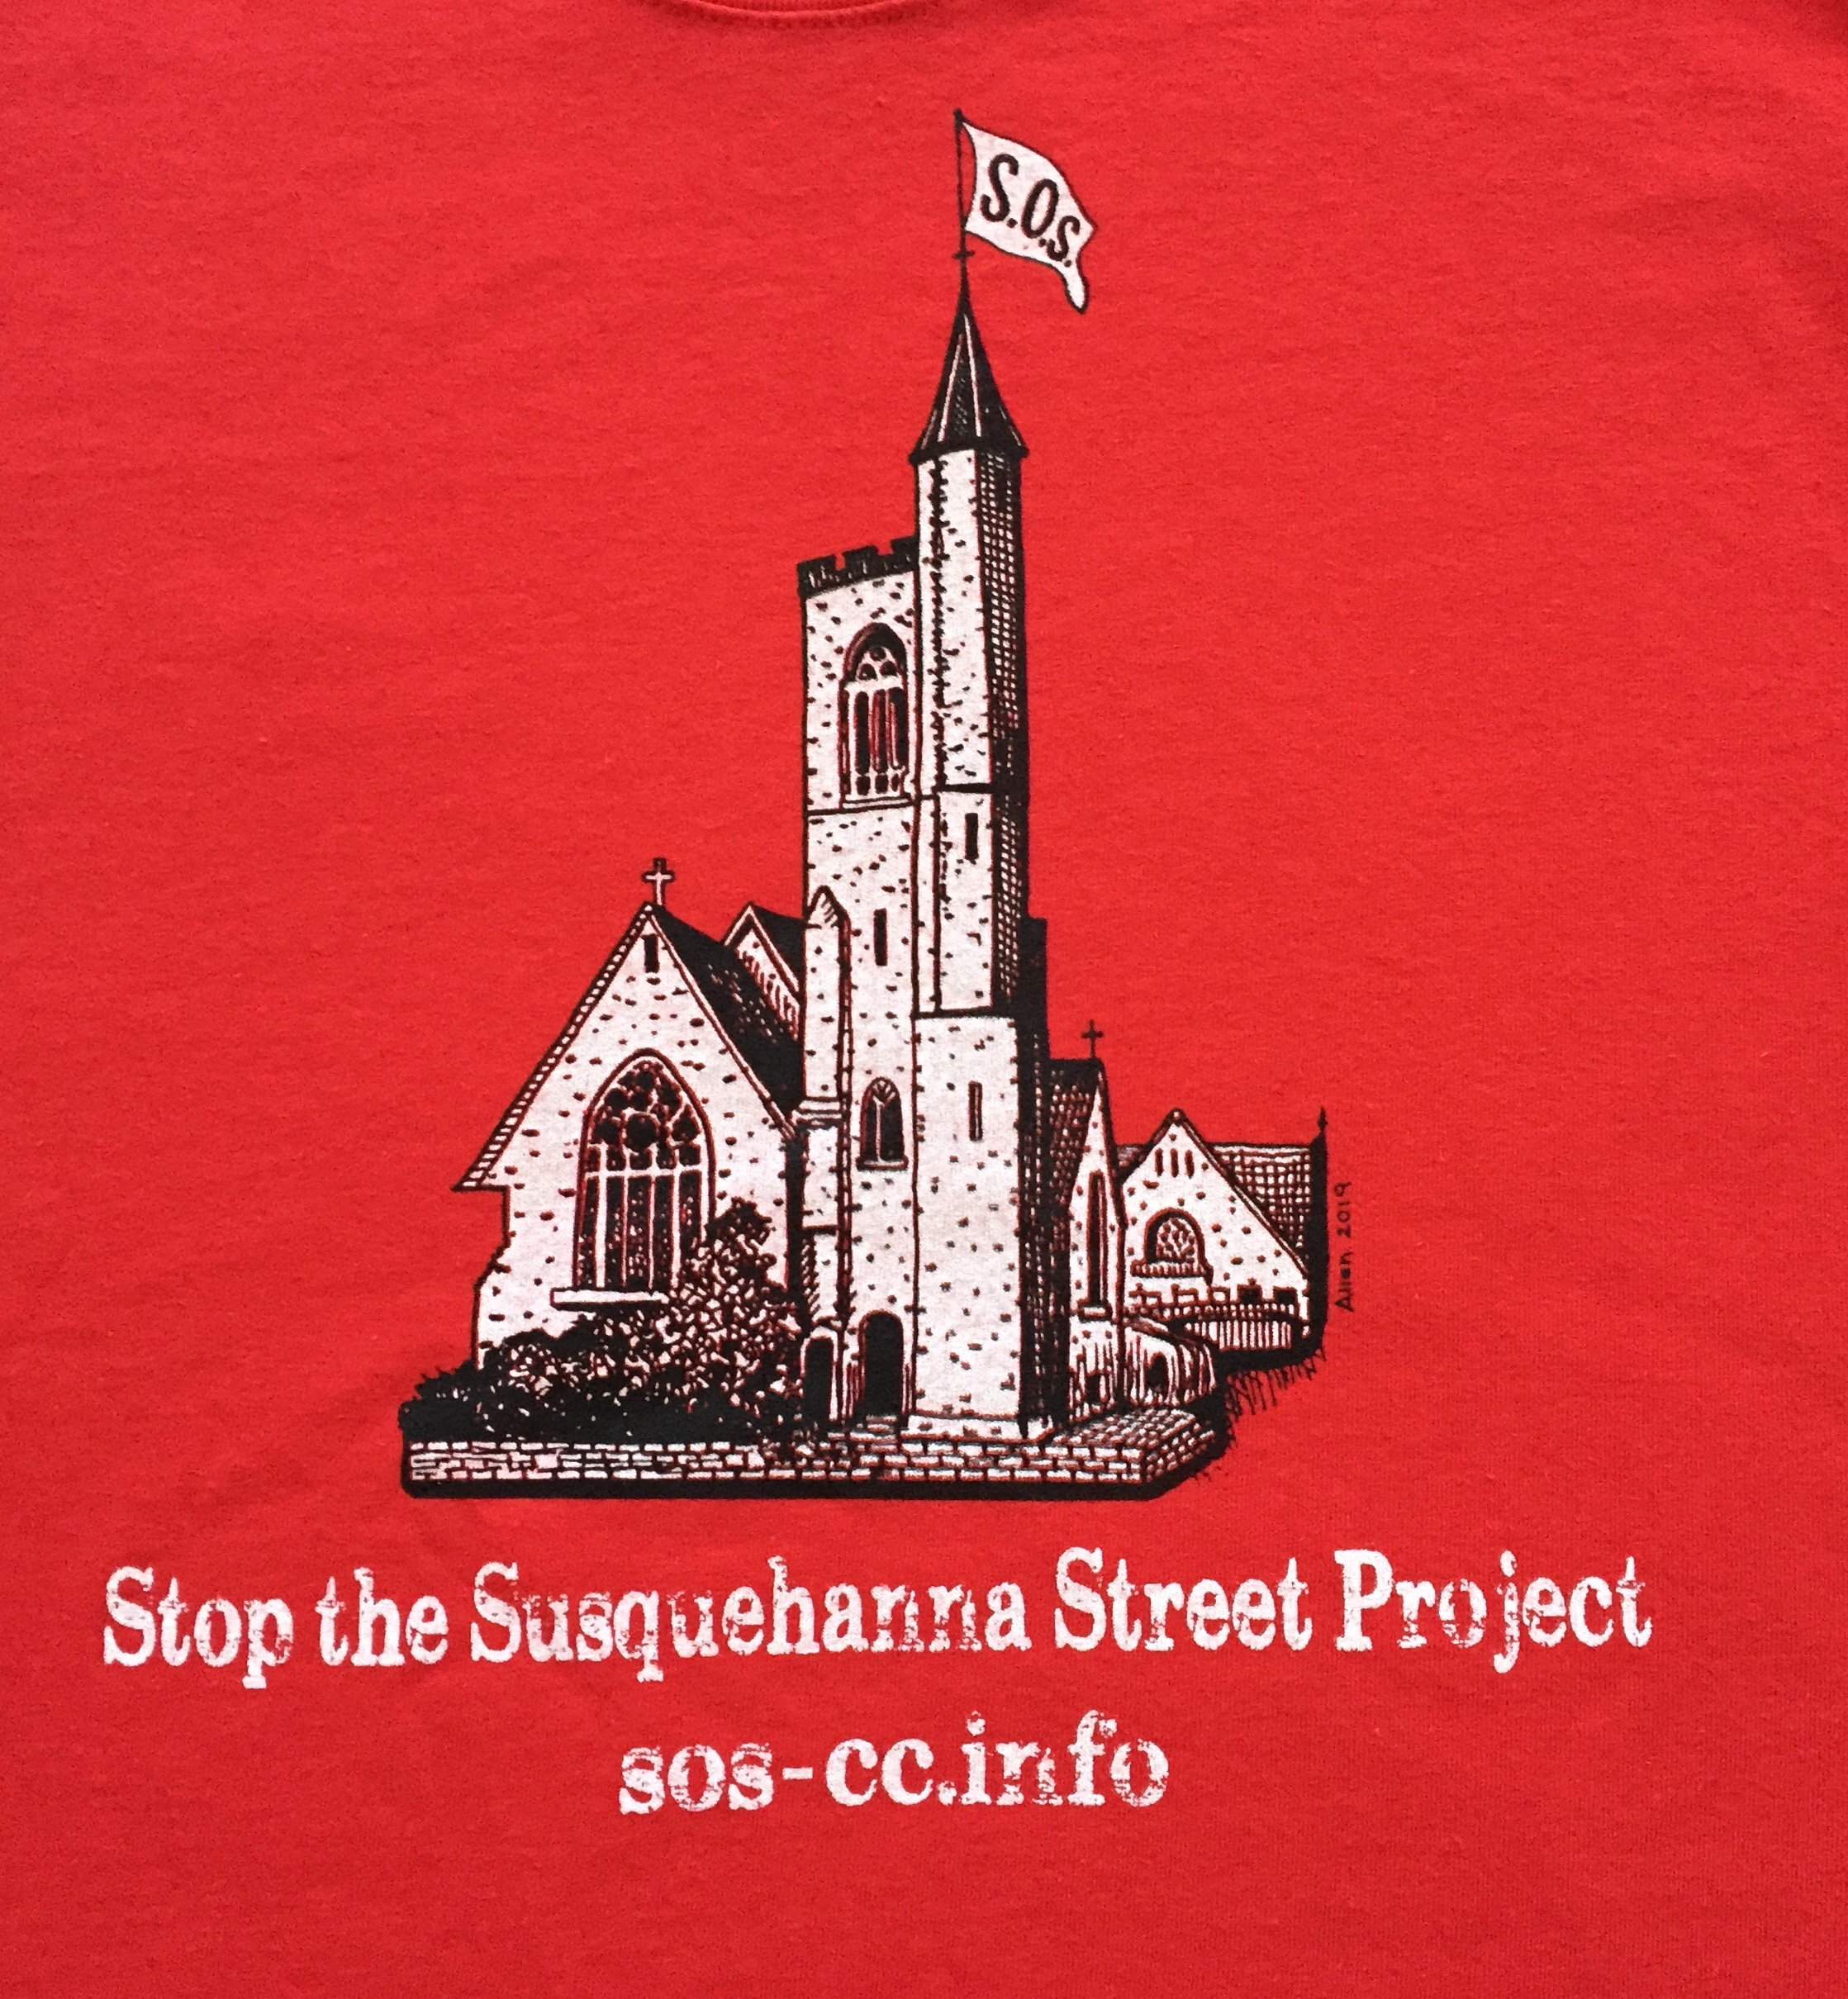 Stop the Susquehanna Street Project Tshirt image of St. Mark's Church with an SOS flag at the tower.